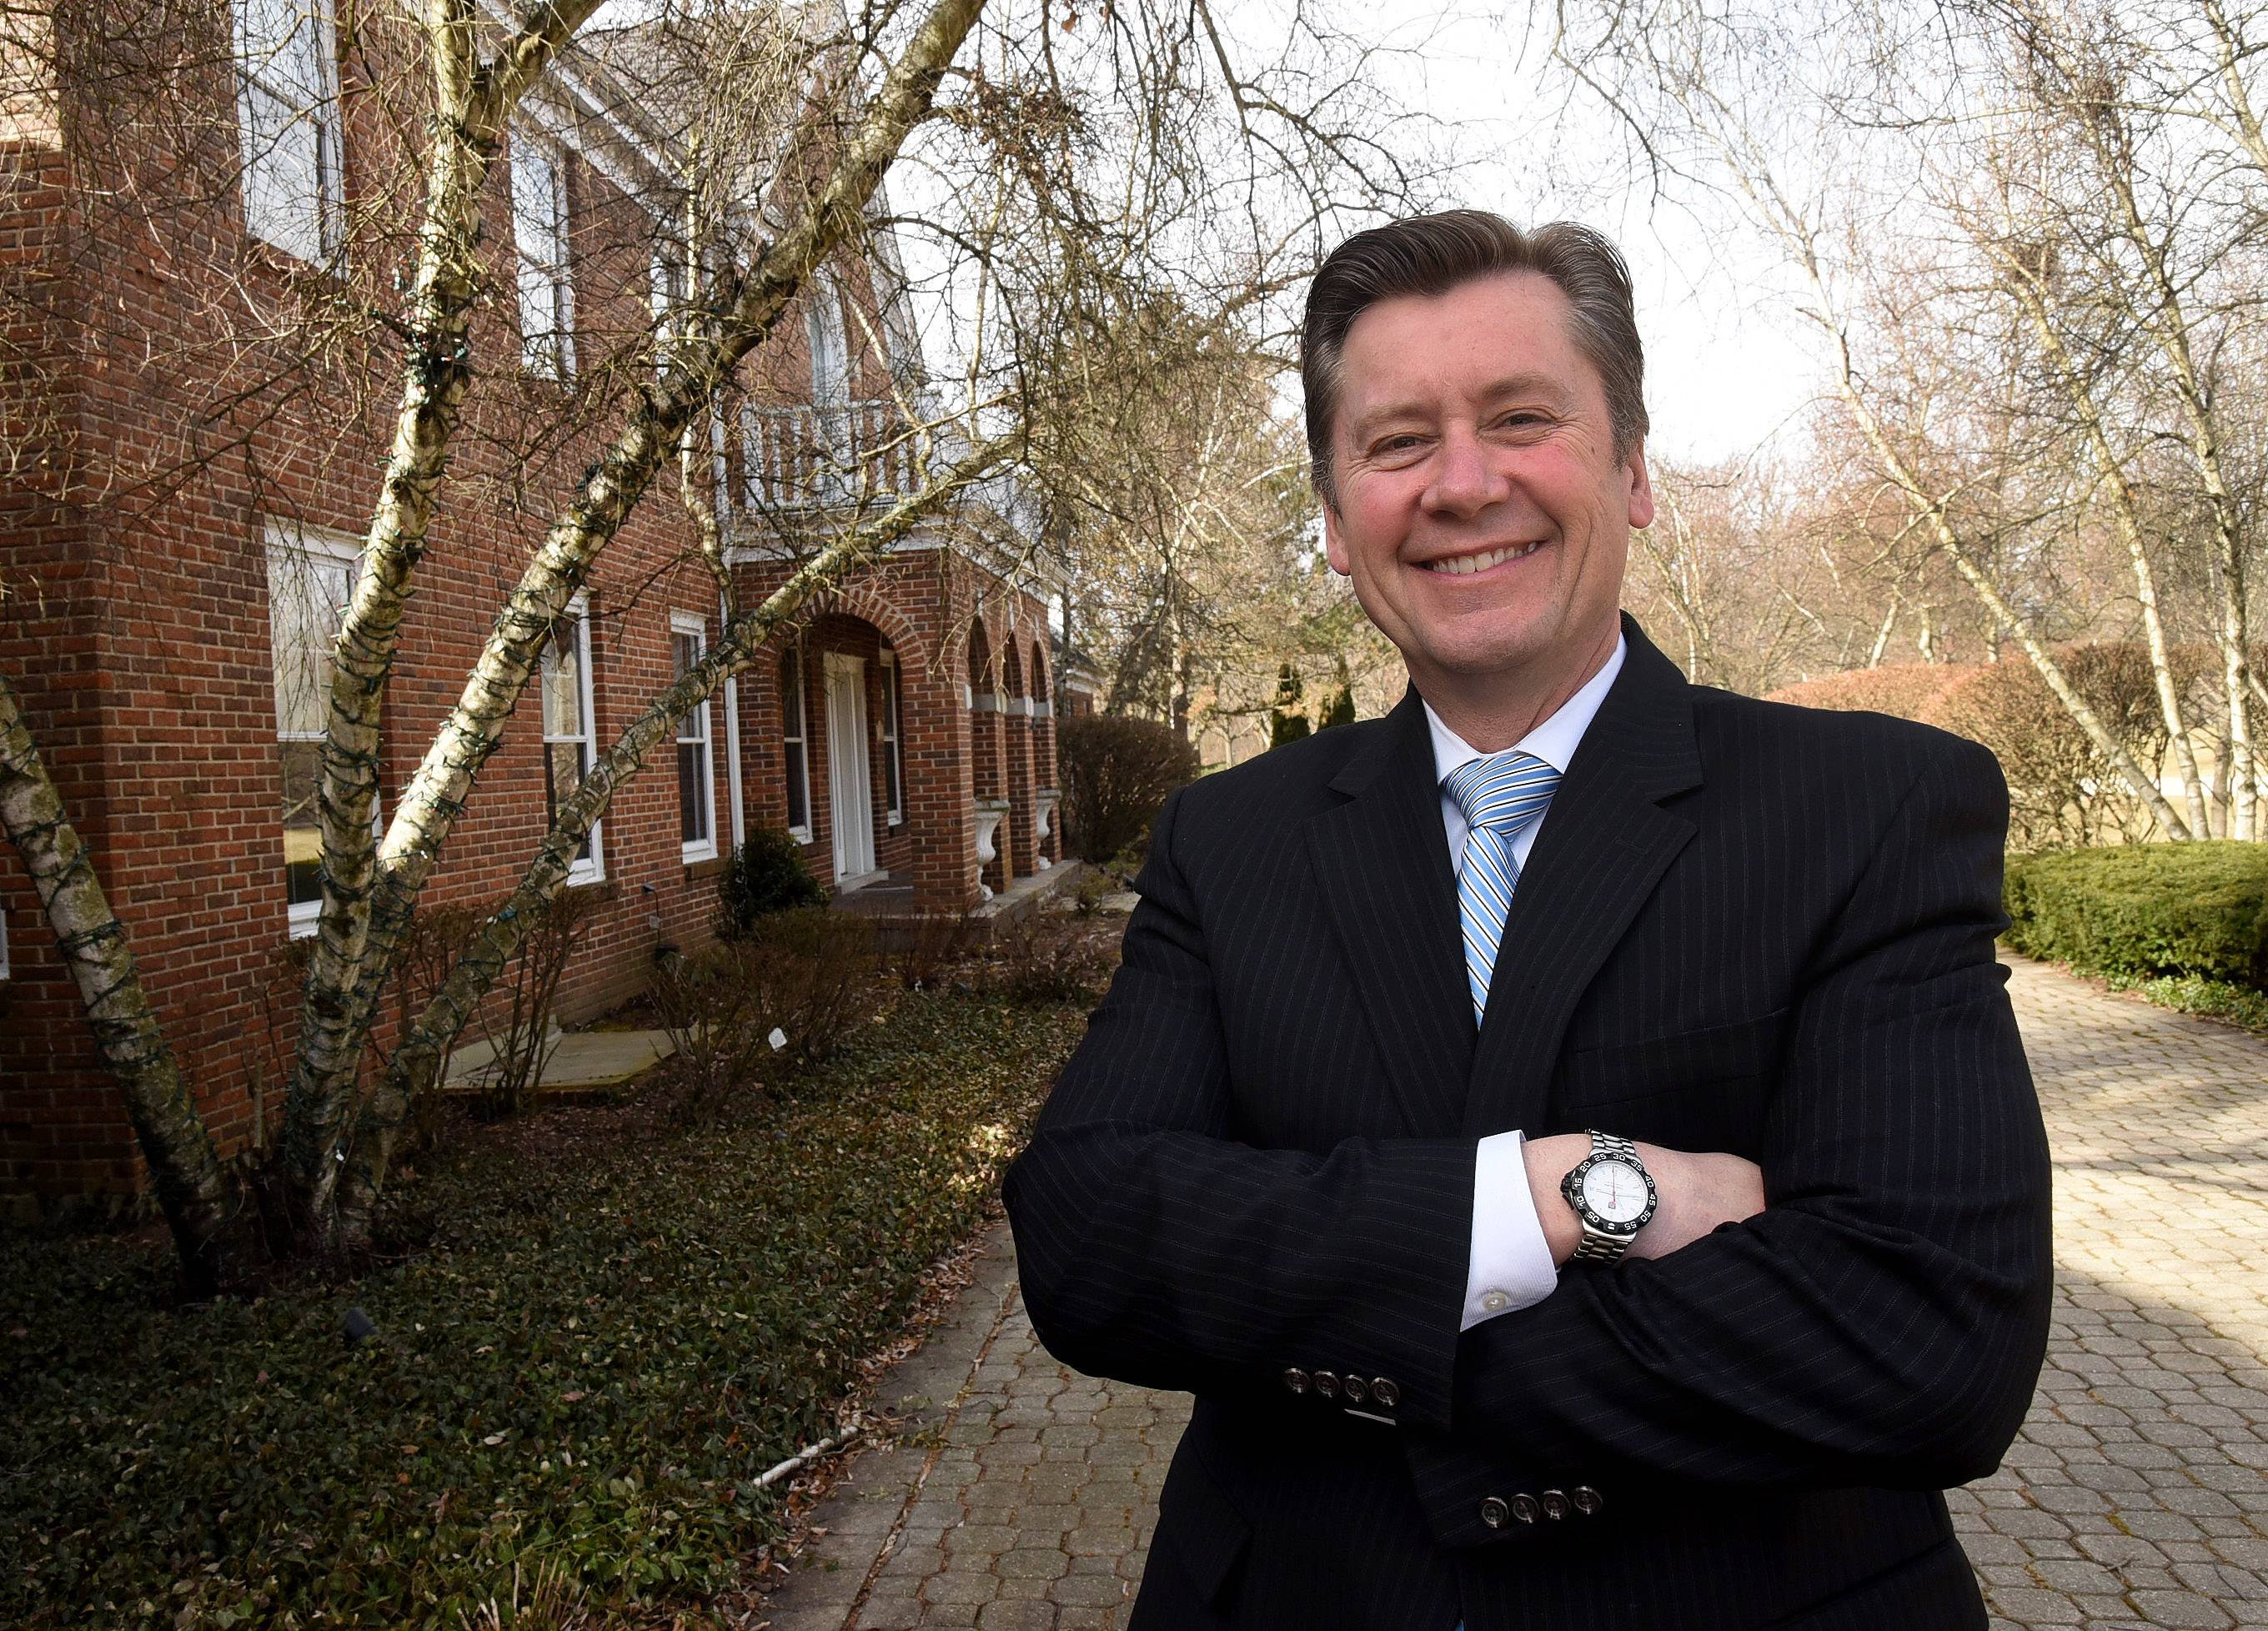 Chris Jacobs, agent with Century 21 - The Pinnacle Group, at one of his listings in Inverness.